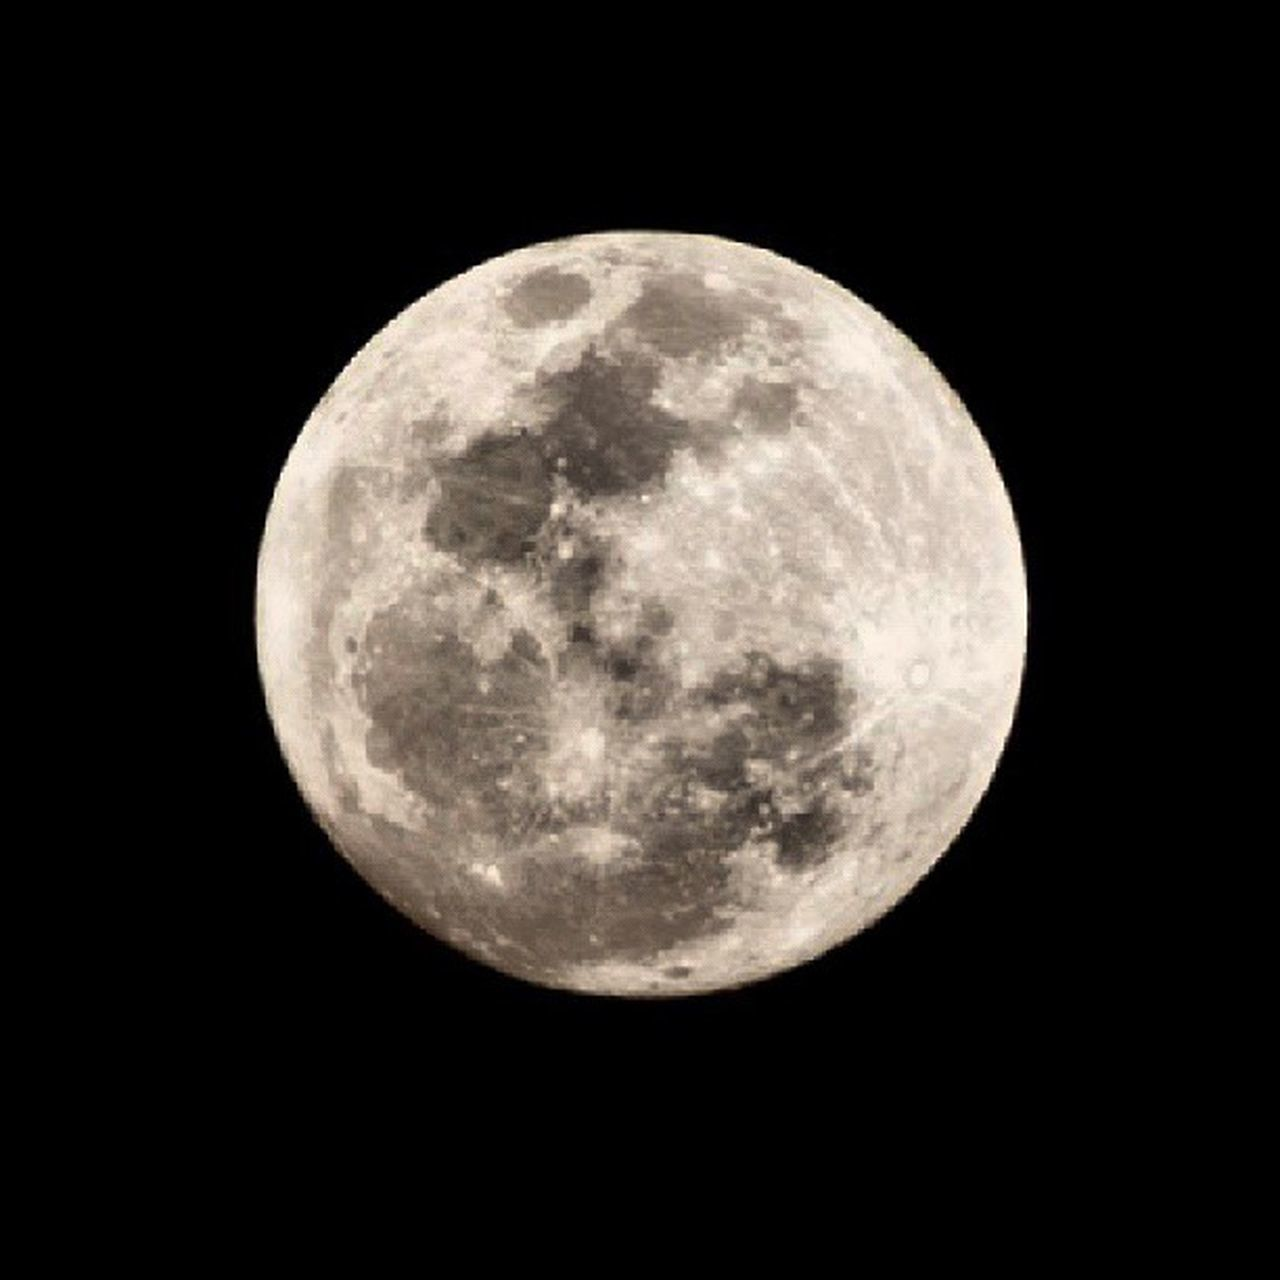 moon, night, moon surface, full moon, astronomy, majestic, planetary moon, nature, space, beauty in nature, scenics, no people, tranquility, space exploration, outdoors, black color, moonlight, sky, tranquil scene, close-up, half moon, satellite view